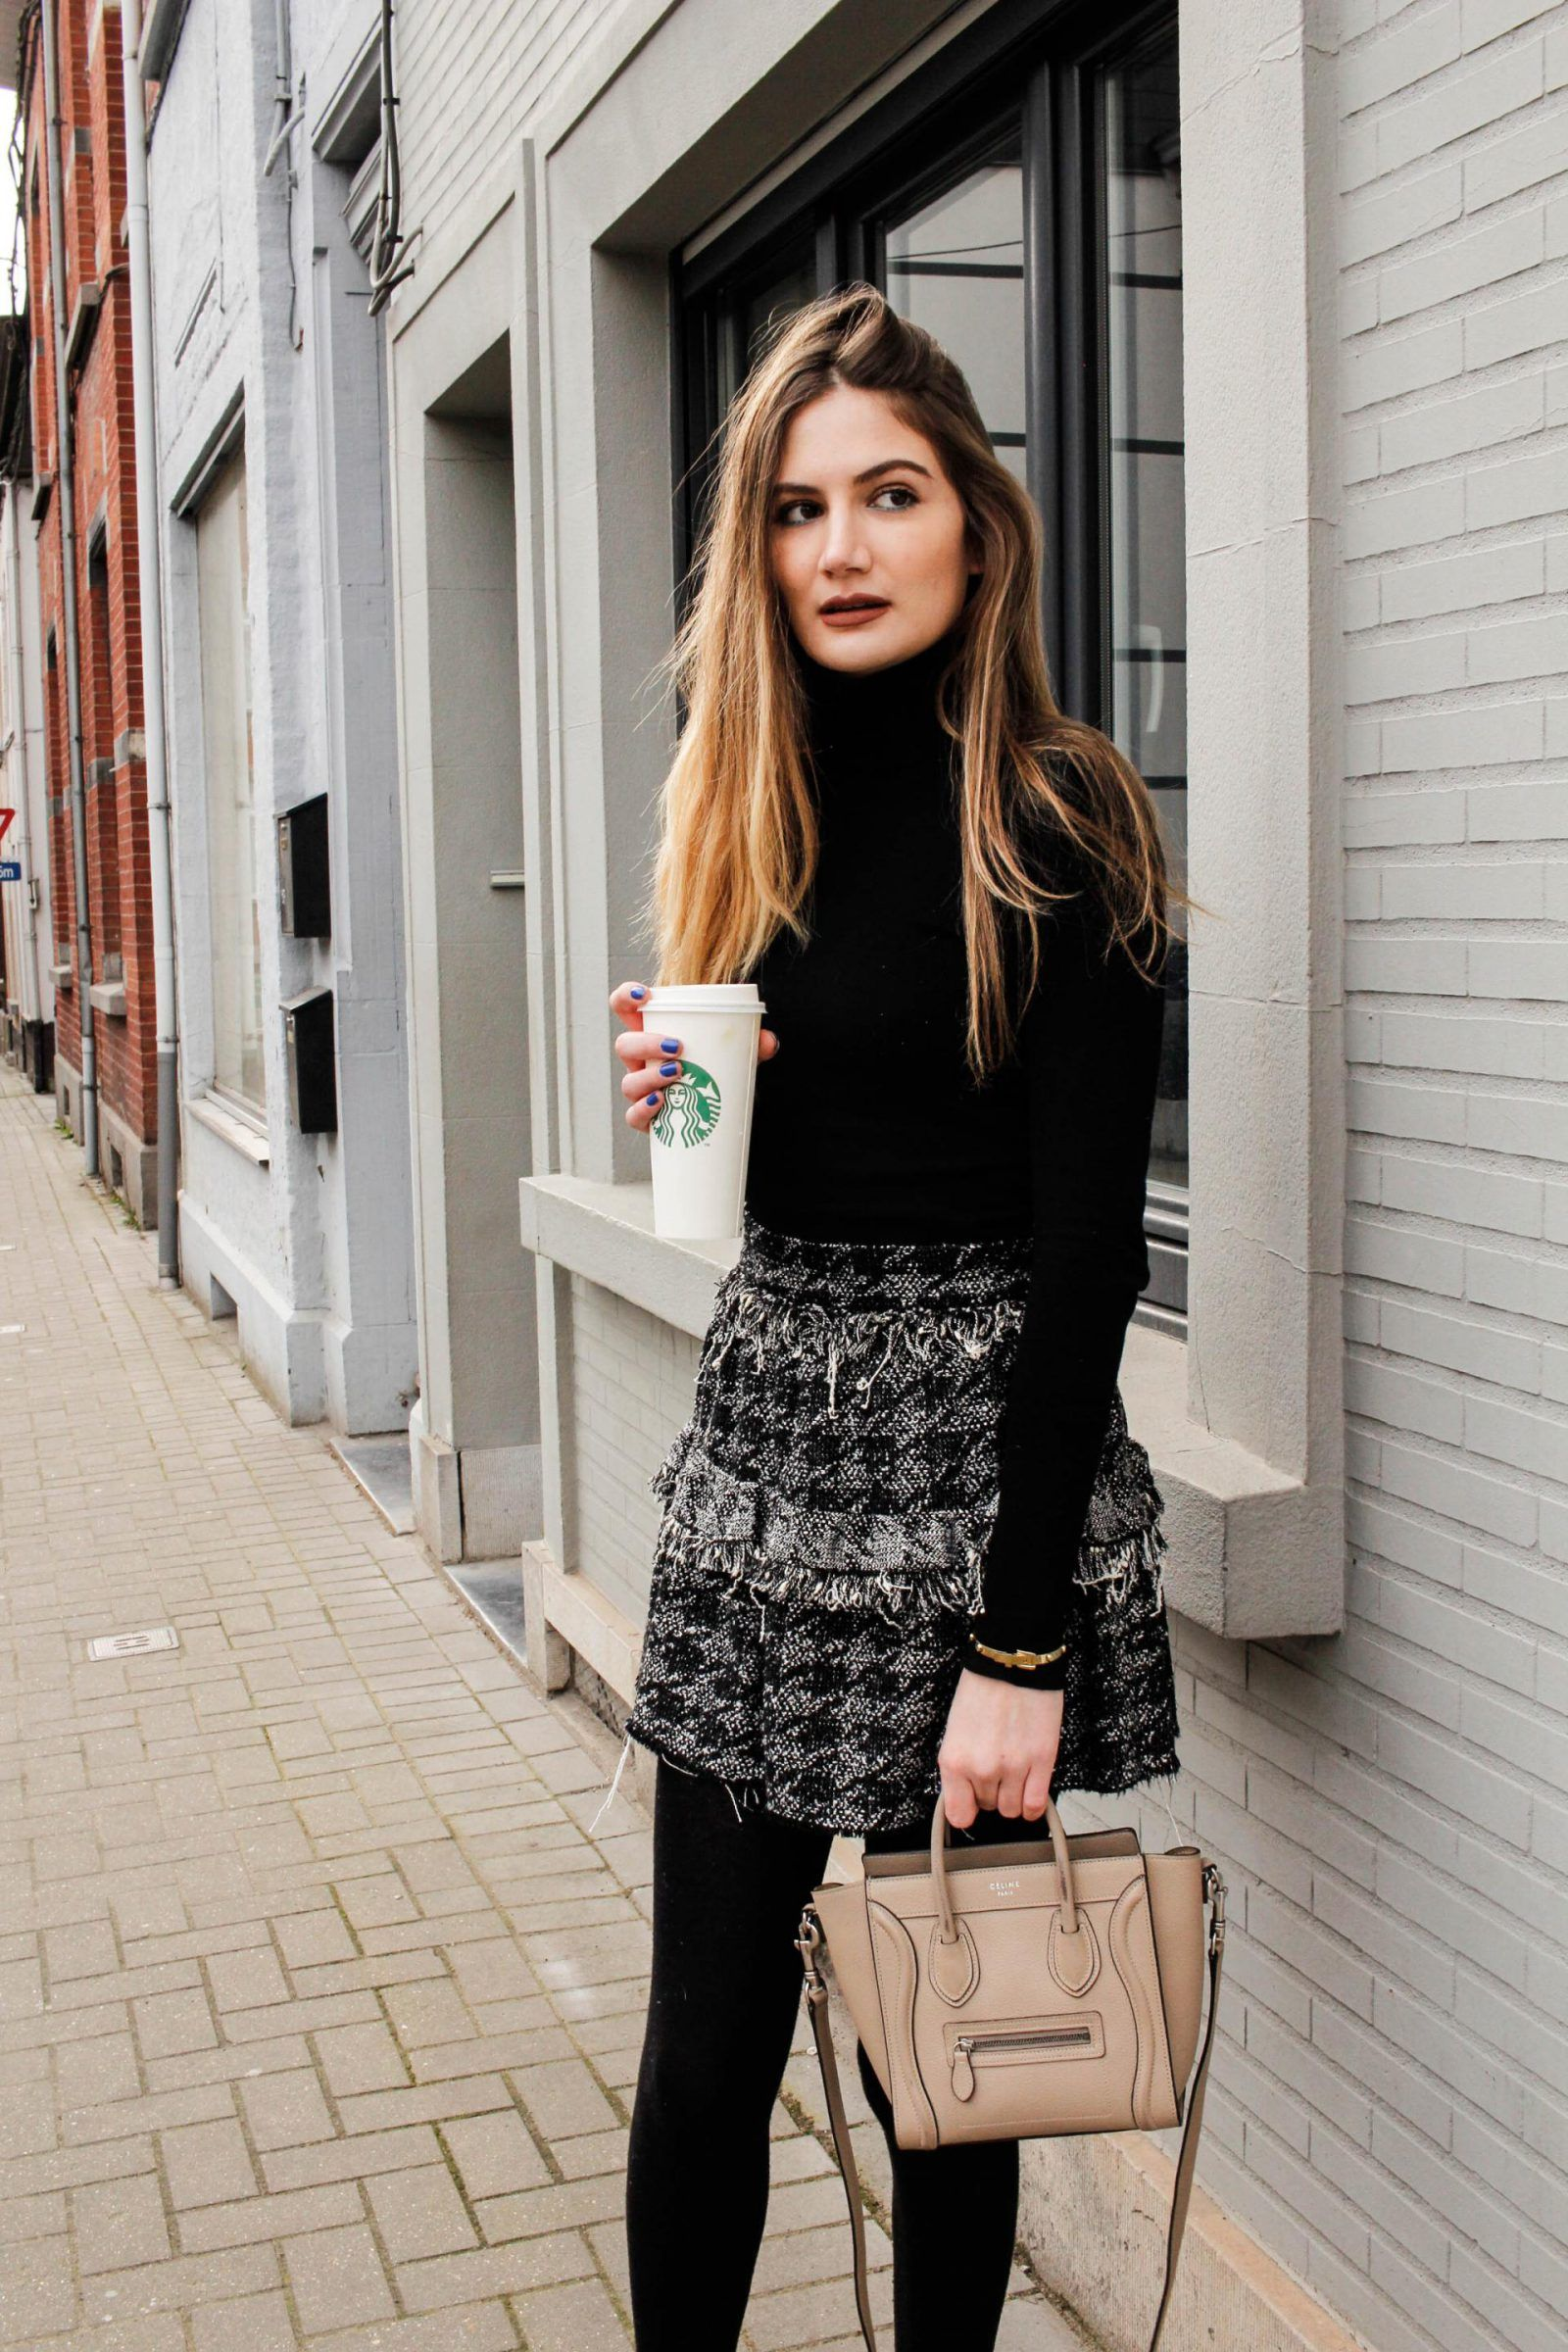 d6eefb4ea206 monochrome chic black céline nano tall blonde outfit blogger tweed skirt  ZARA